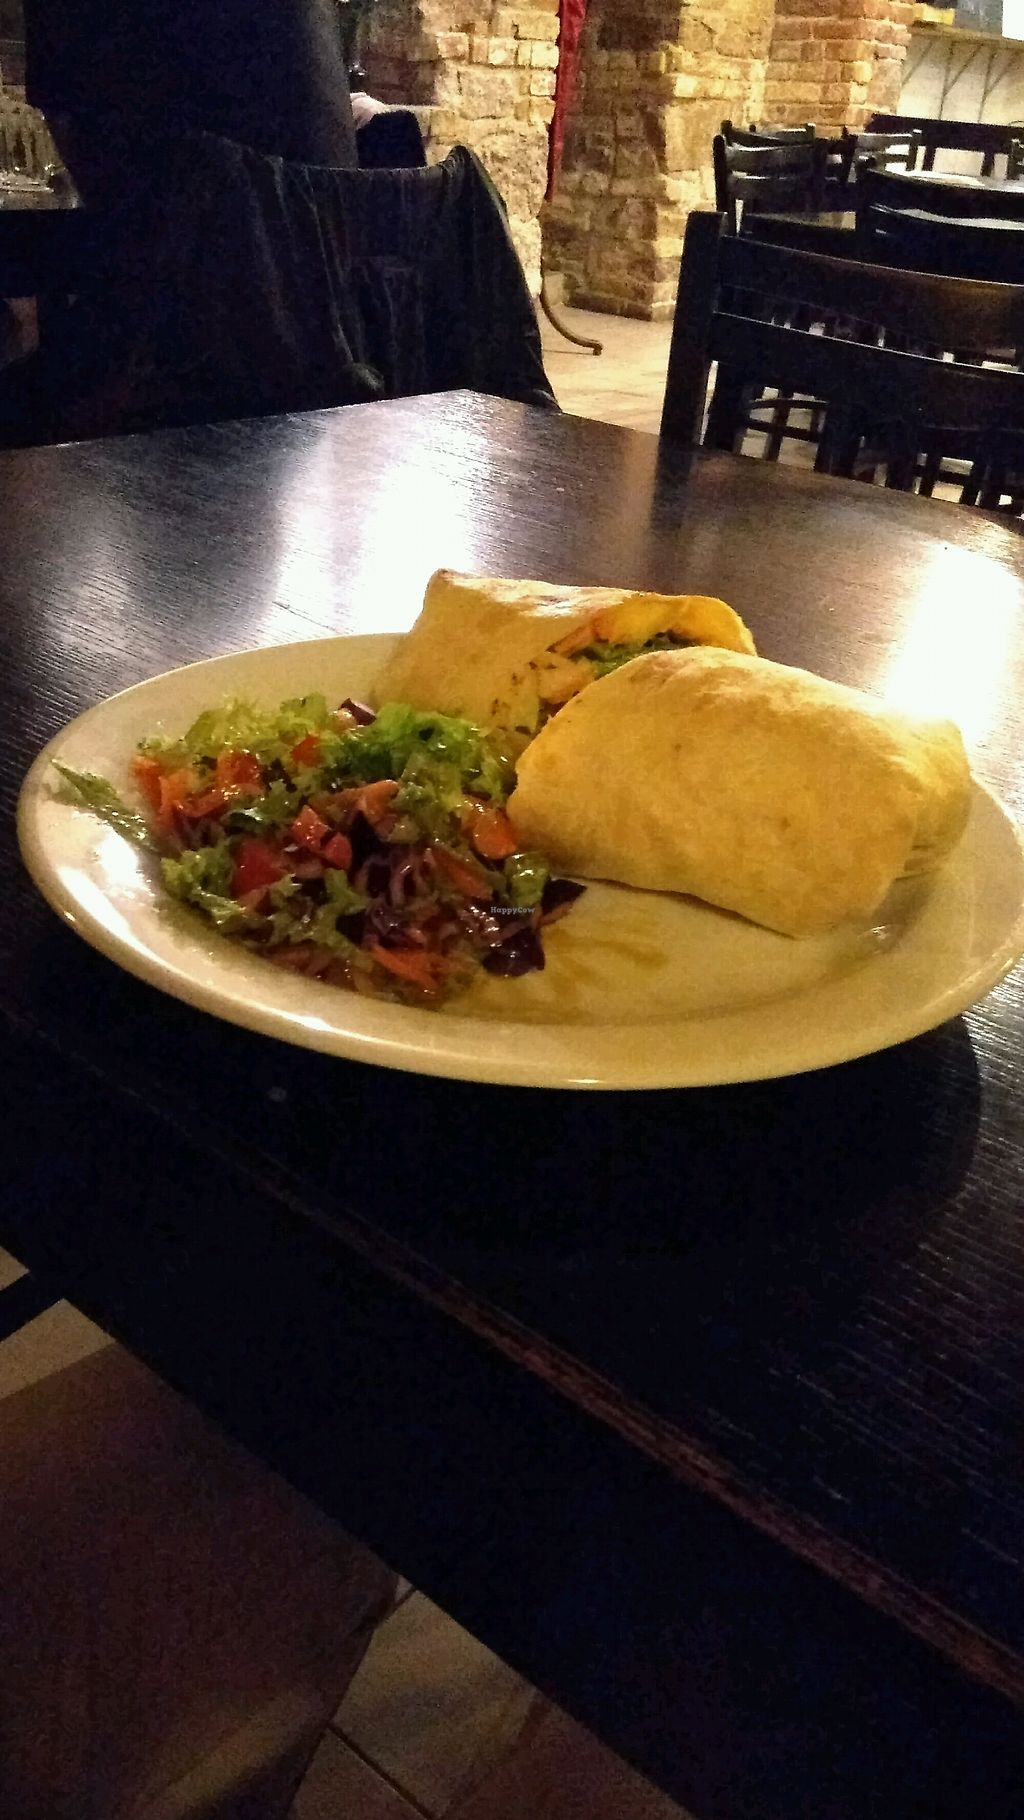 """Photo of Tři Ocásci  by <a href=""""/members/profile/rOdy"""">rOdy</a> <br/>tempeh BBQ wrap <br/> February 1, 2018  - <a href='/contact/abuse/image/103404/353604'>Report</a>"""